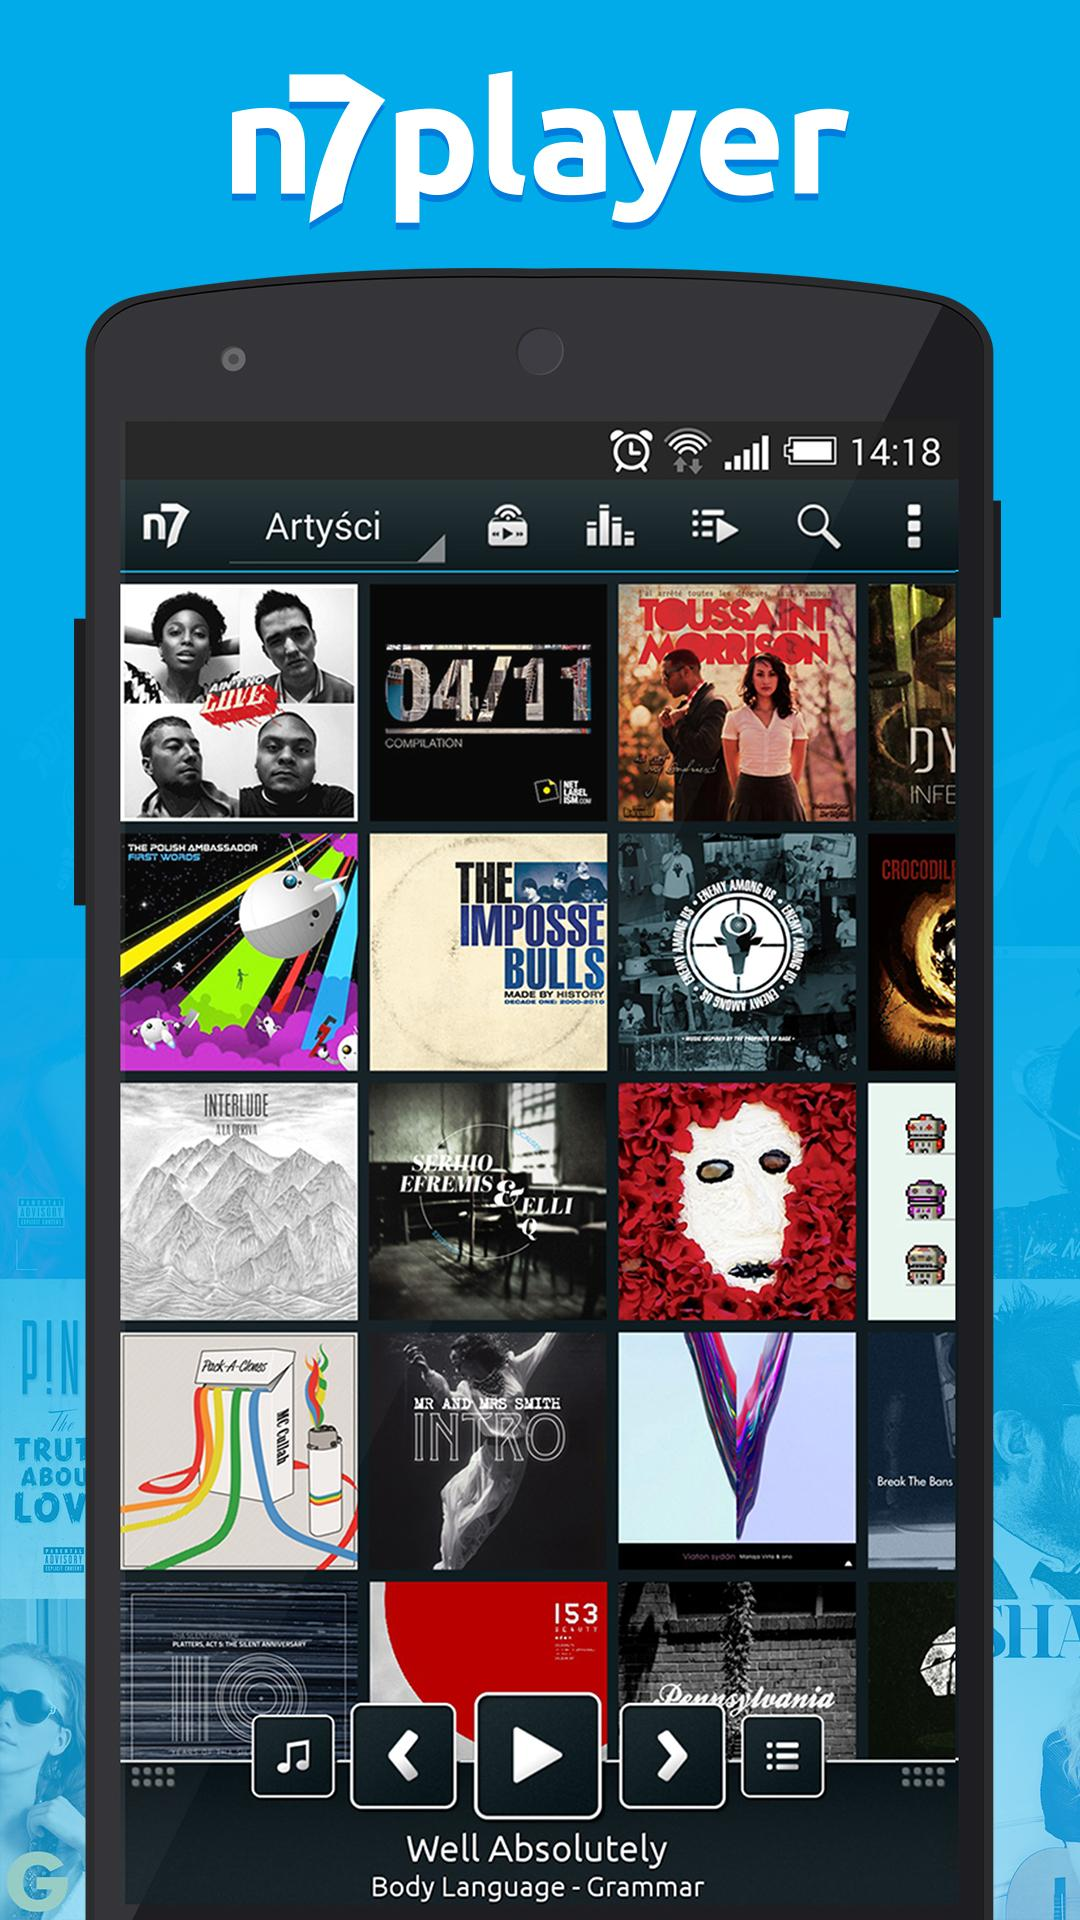 n7player Music Player image #1